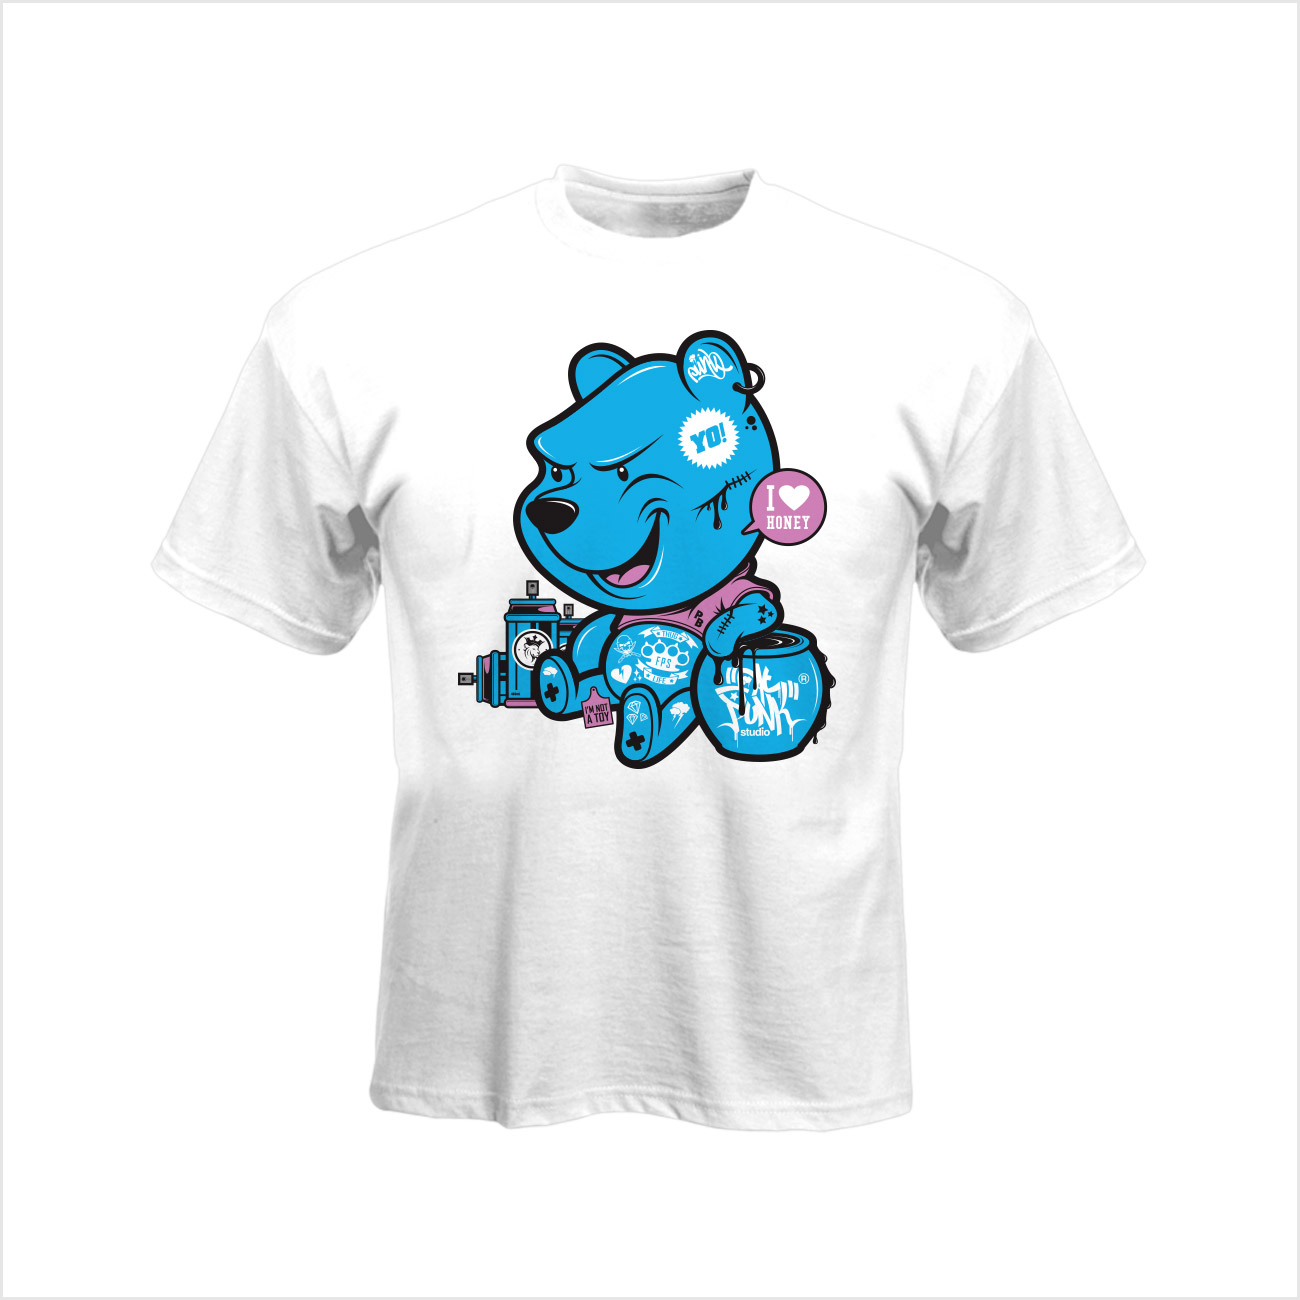 Pooh Bear Thug Life T-shirt in white - Fat Punk Studio 9003c9620